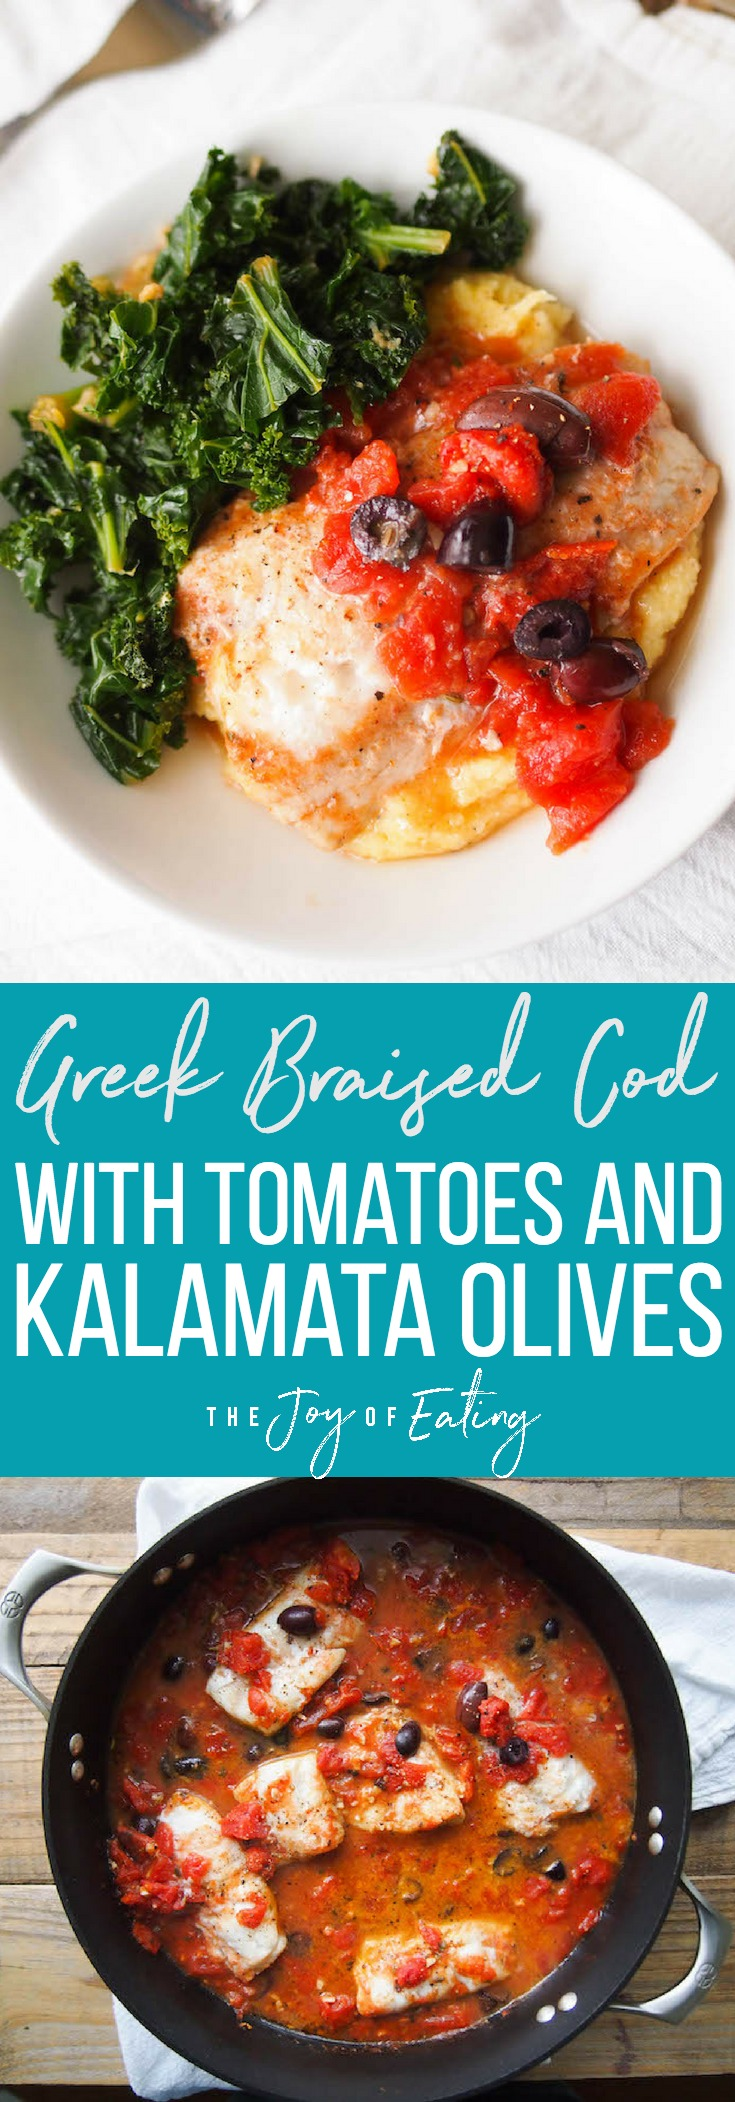 This Greek braised cod is an easy and delicious weeknight meal! Braise cod with tomatoes and kalamata olives and serve over polenta with kale! #mediterranean #cod #fish #seafood #healthyrecipe #glutenfree